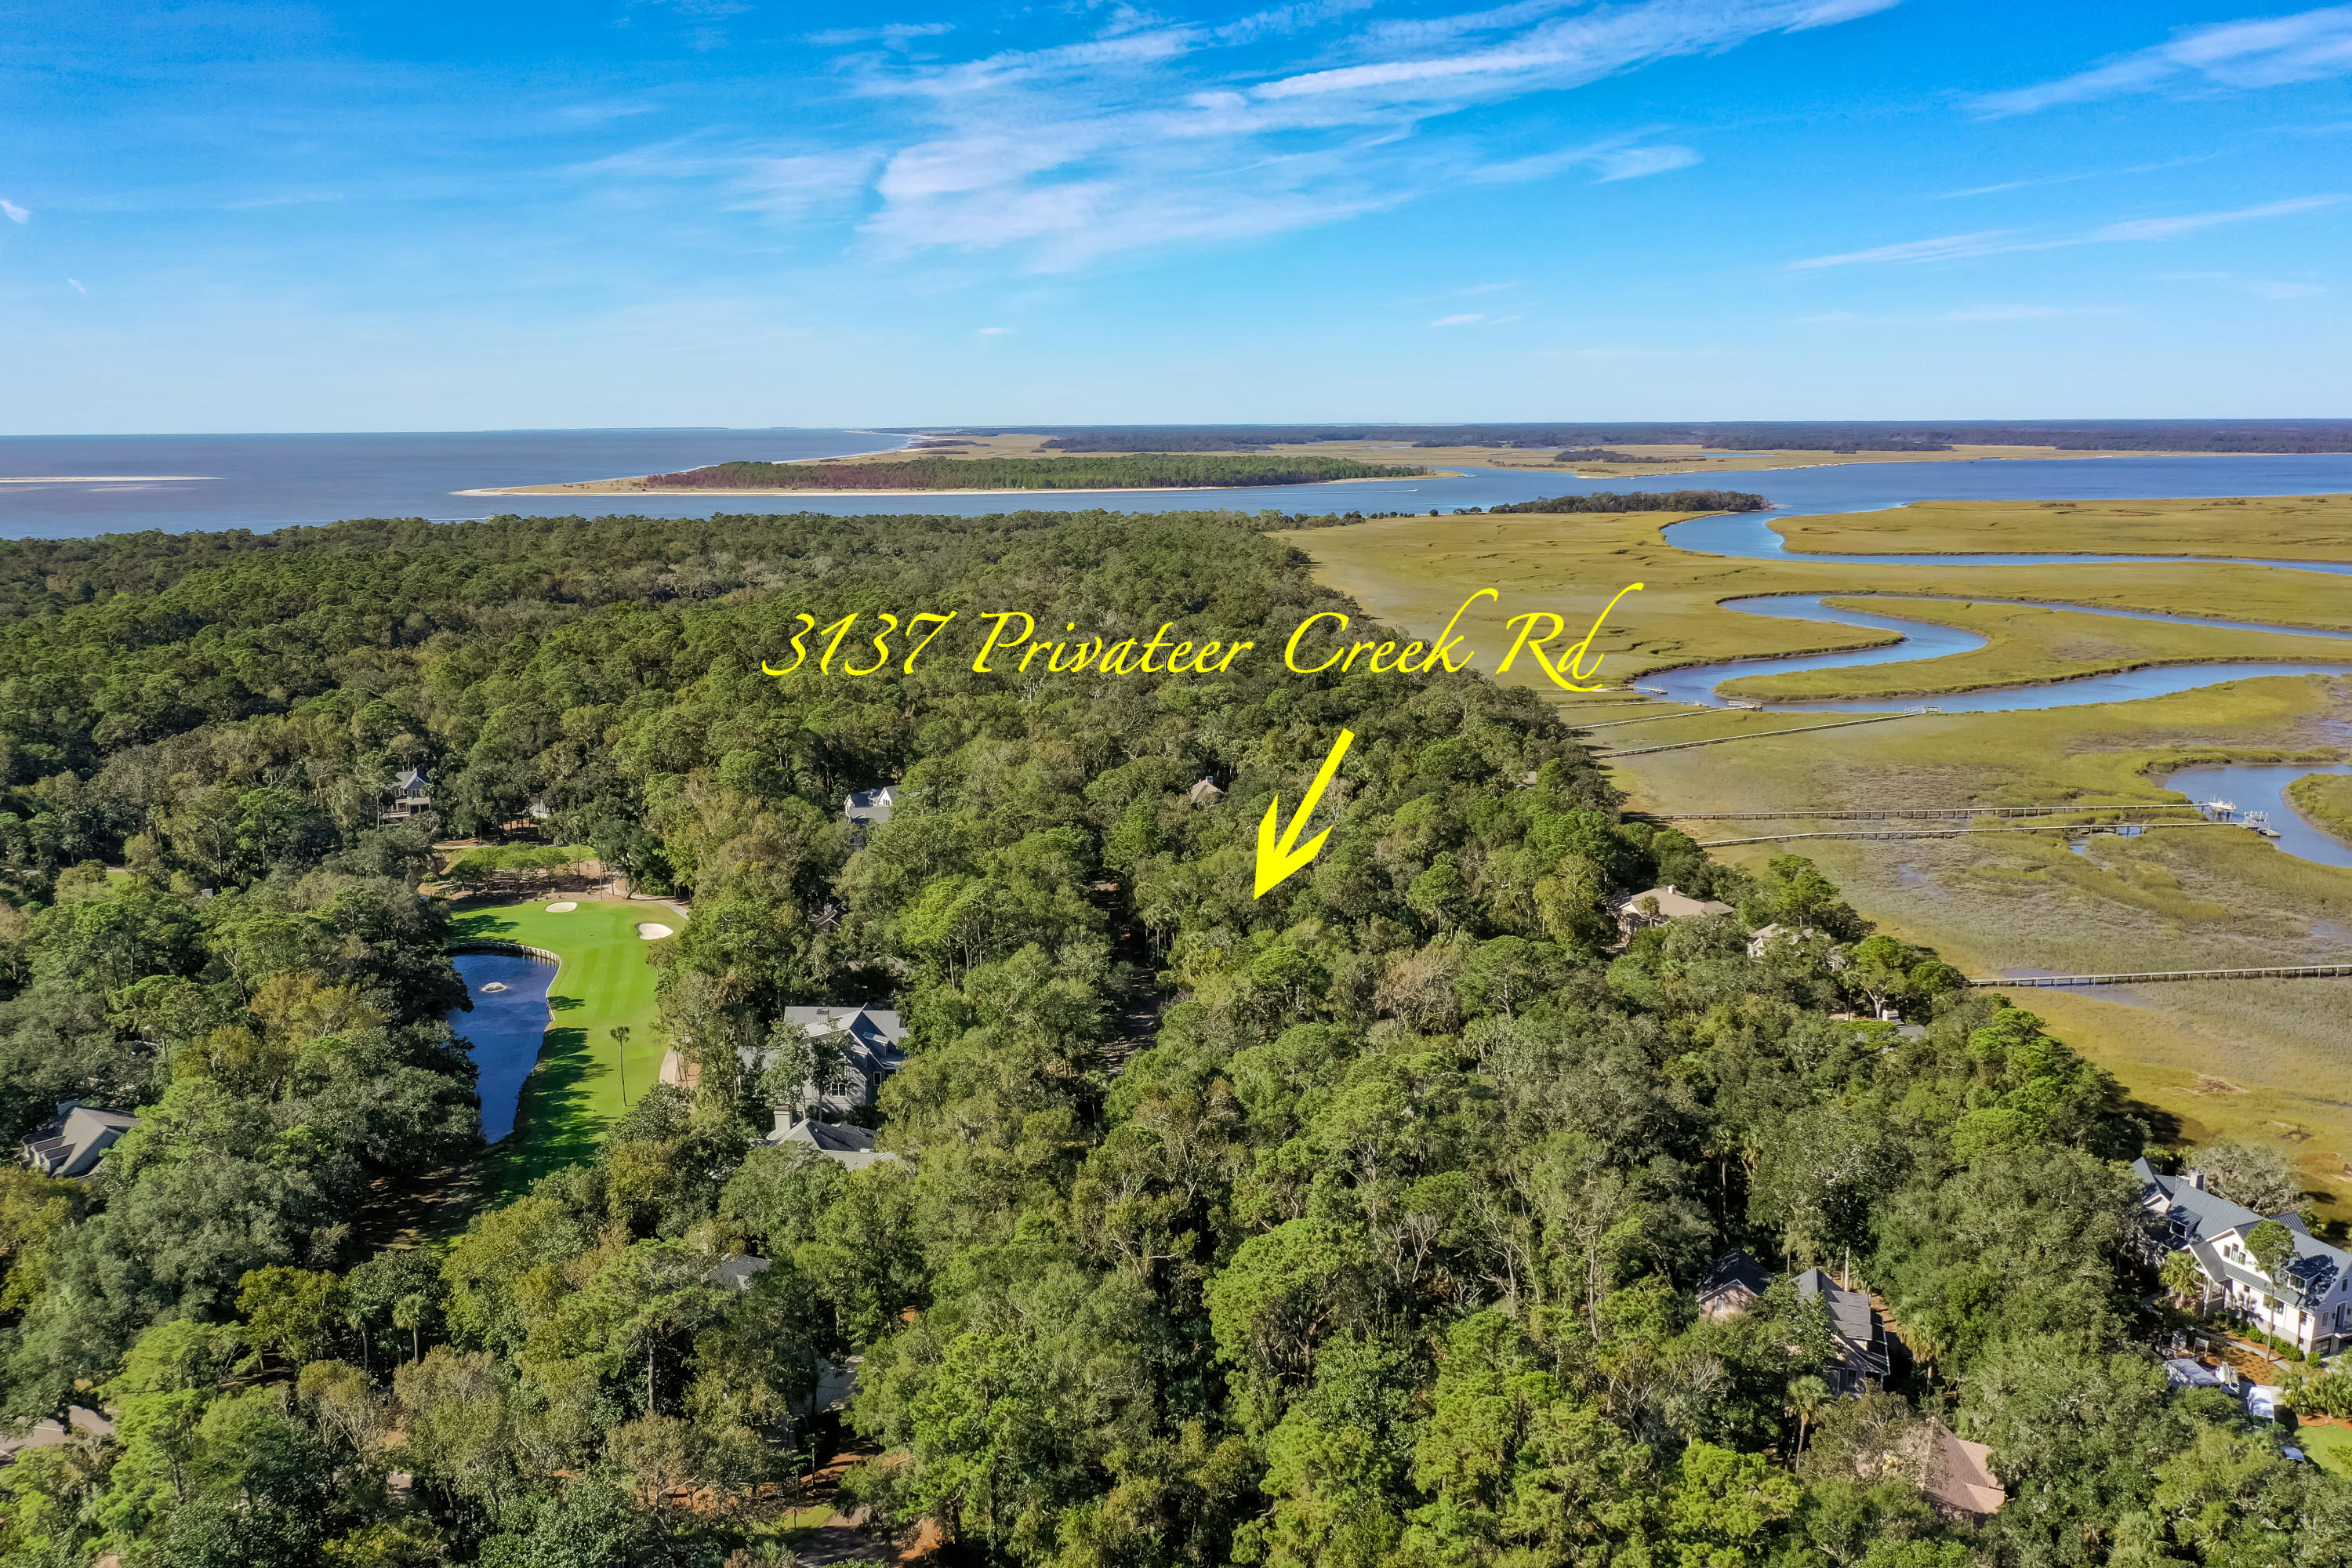 Seabrook Island Homes For Sale - 3137 Privateer Creek, Seabrook Island, SC - 34